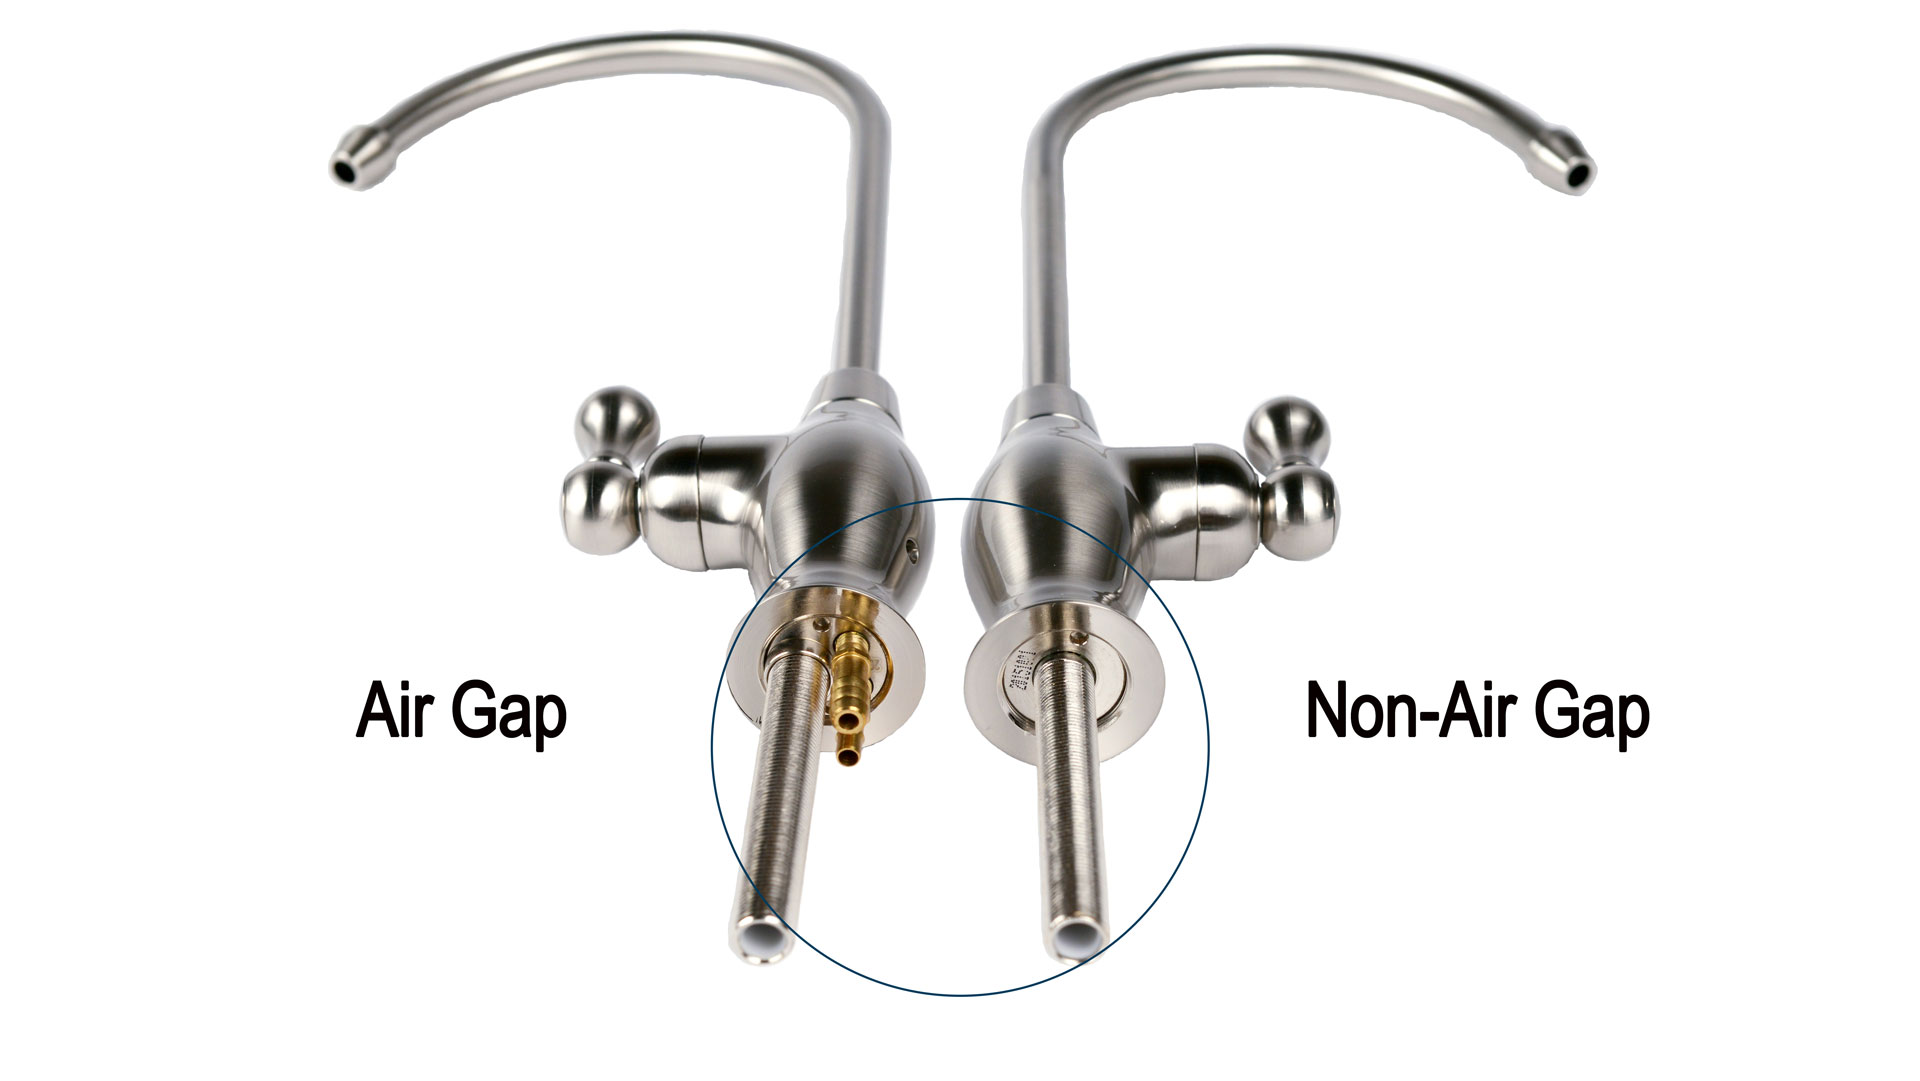 Picture of an Air Gap Faucet side by side a Non Air Gap Faucet